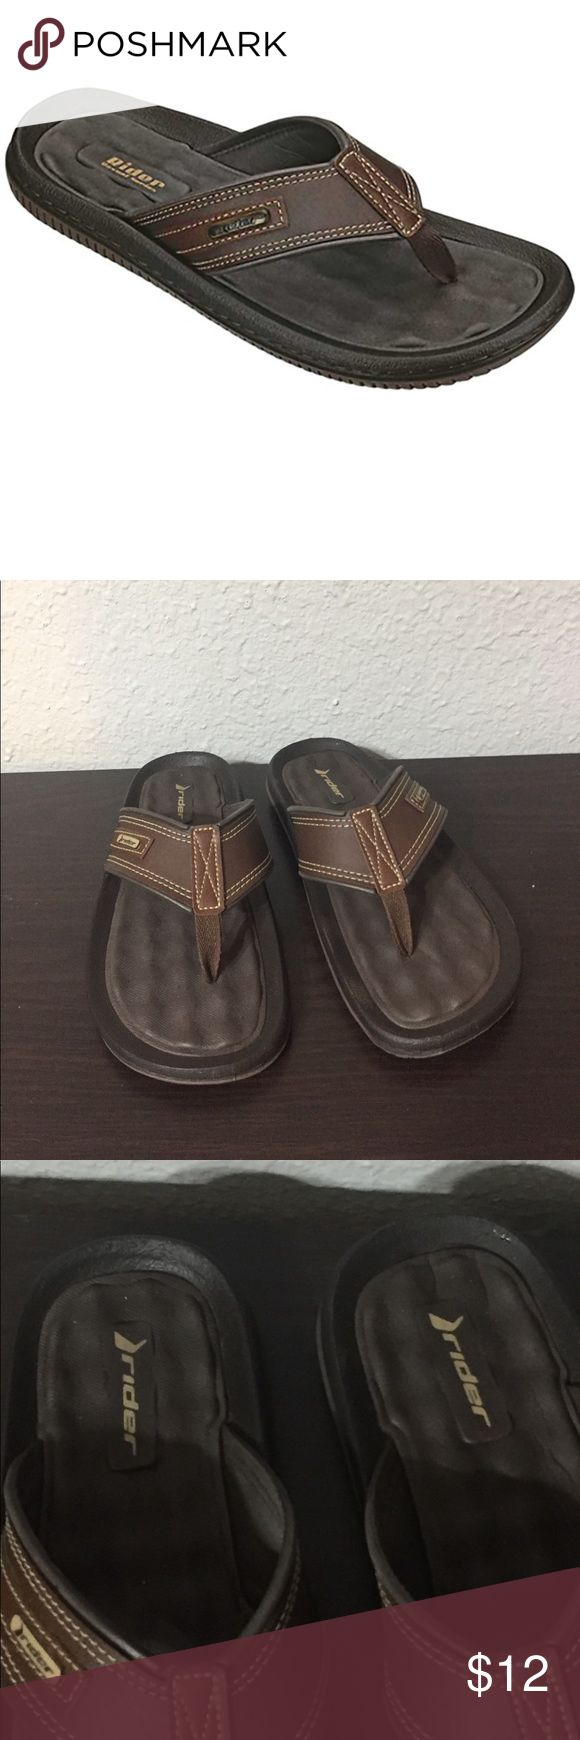 Men's Rider Flip Flops Only worn a couple of times and in great used condition. Stylish leather straps. Smoke free home! Shoes Sandals & Flip-Flops